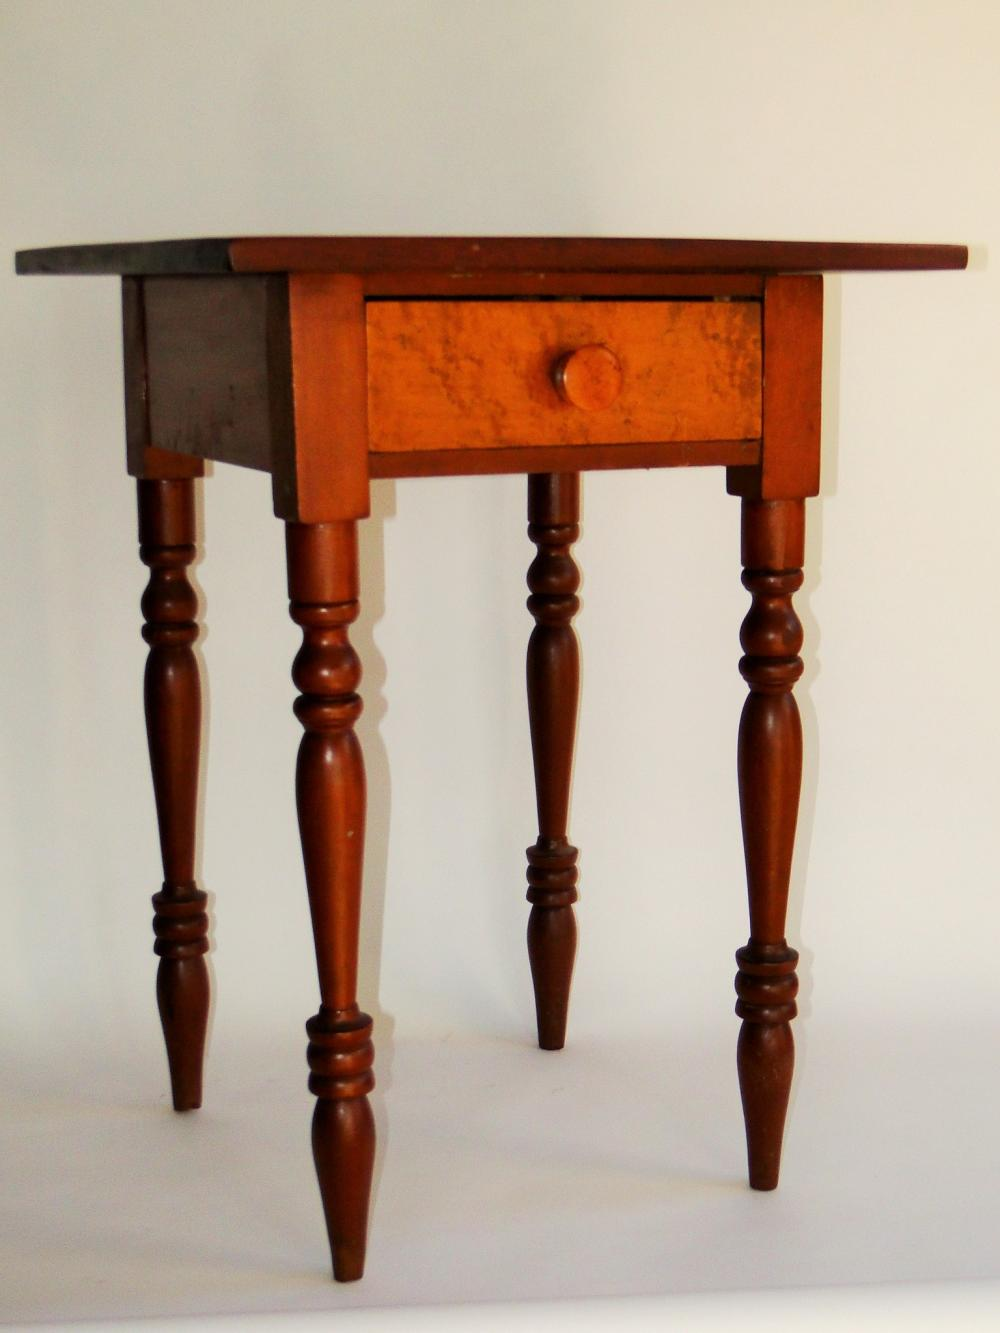 SHERATON PERIOD BIRDSEYE MAPLE STAND